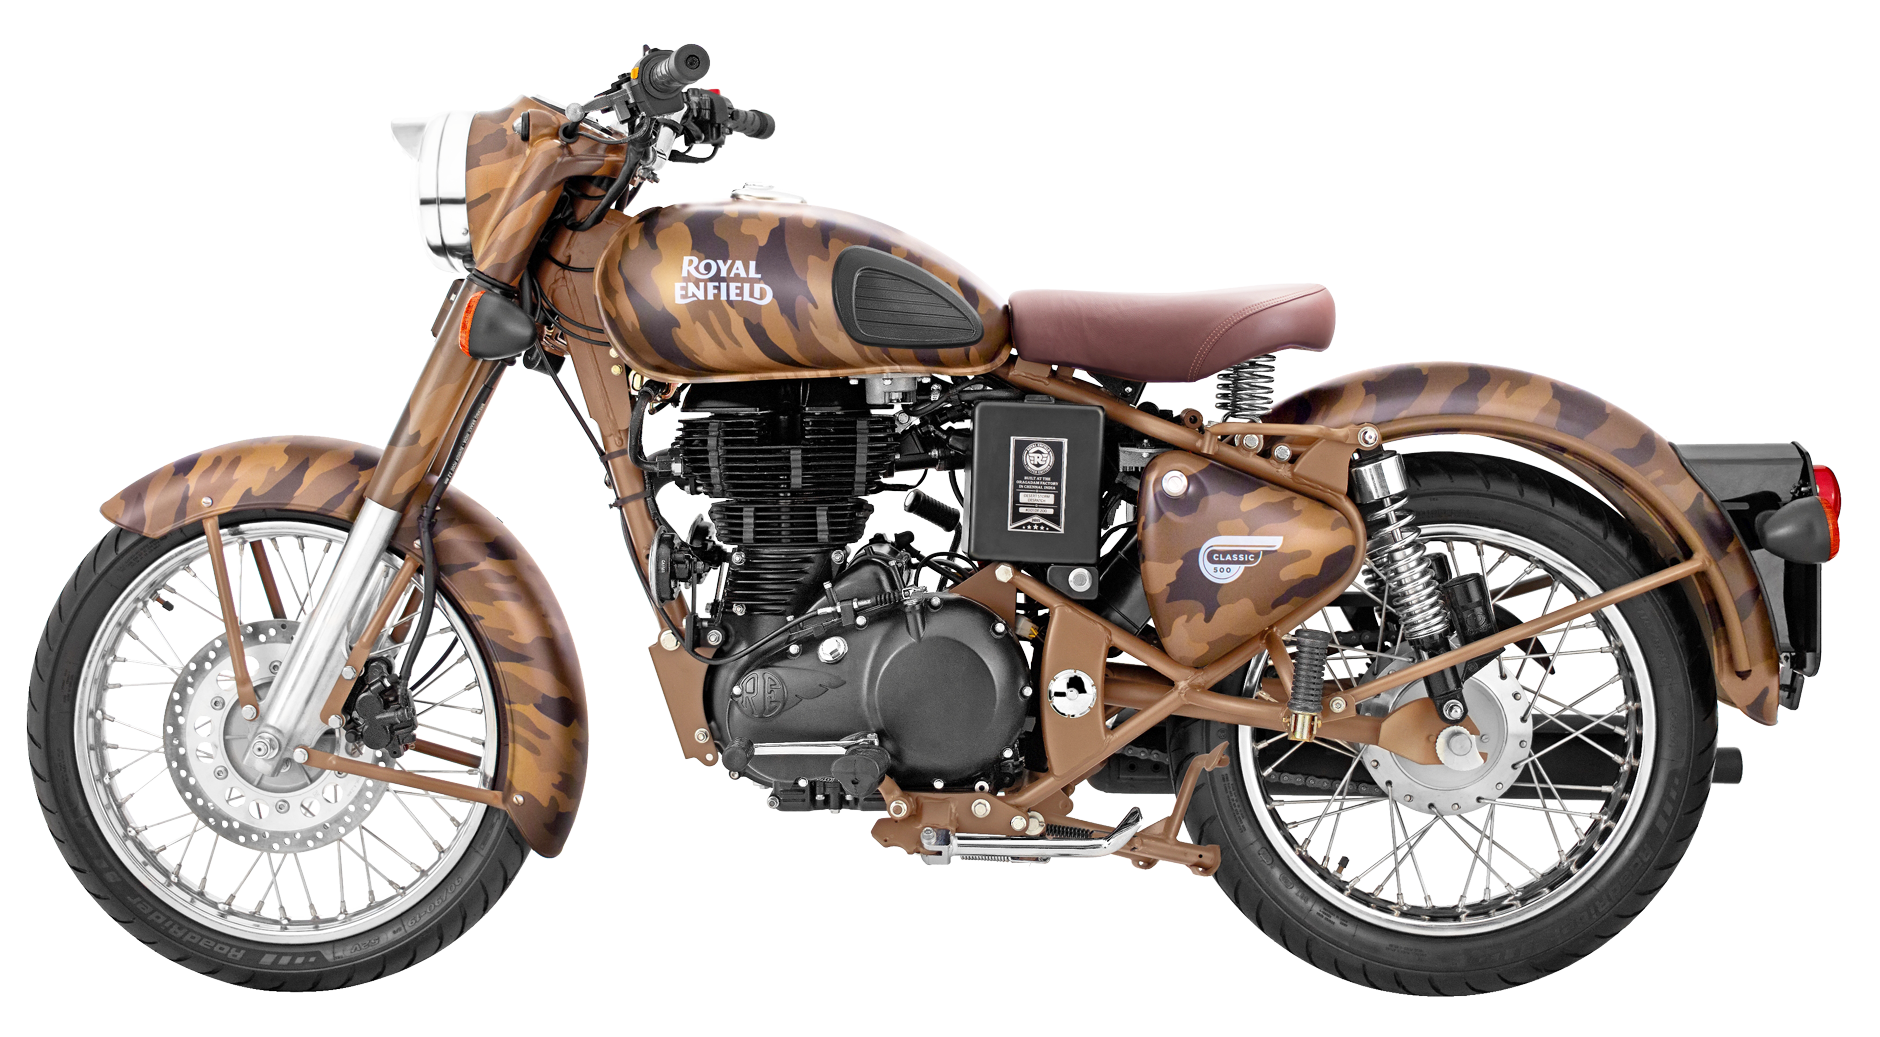 Royal enfield classic desert. Motorcycle clipart bullet bike